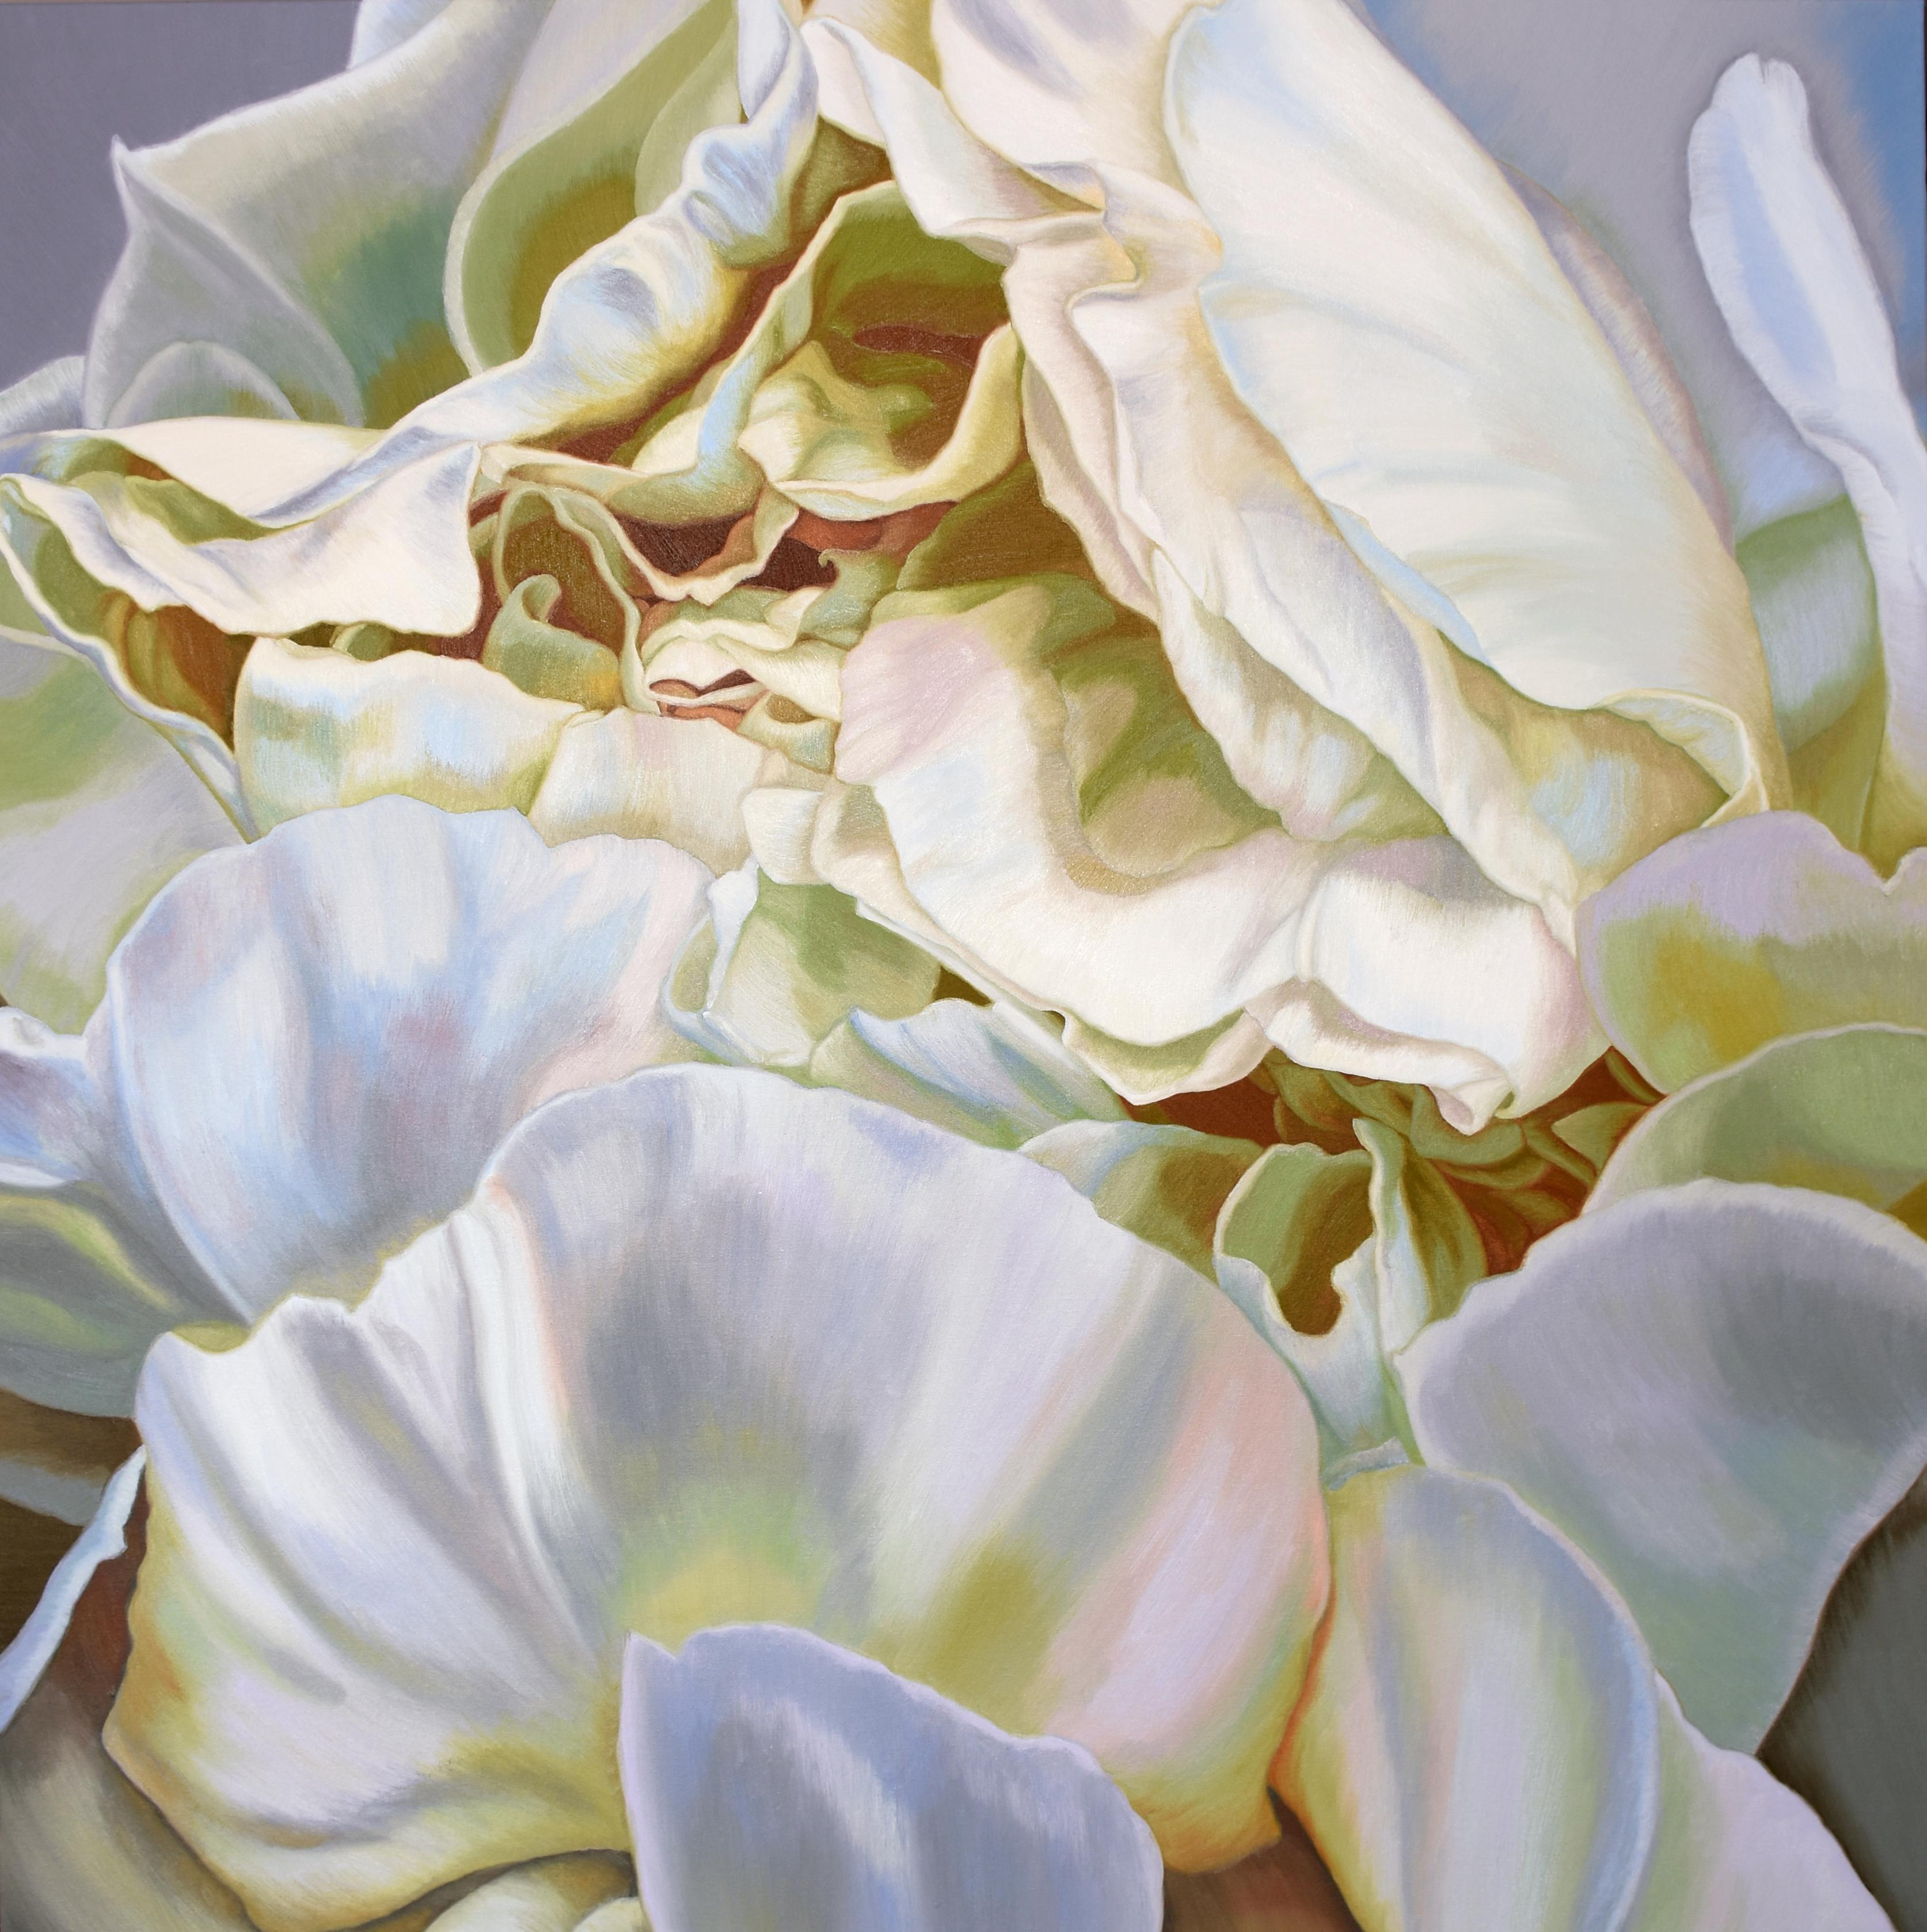 Green Peony 2 (floral painting, realist, canvas, white flower art, oil, realism)